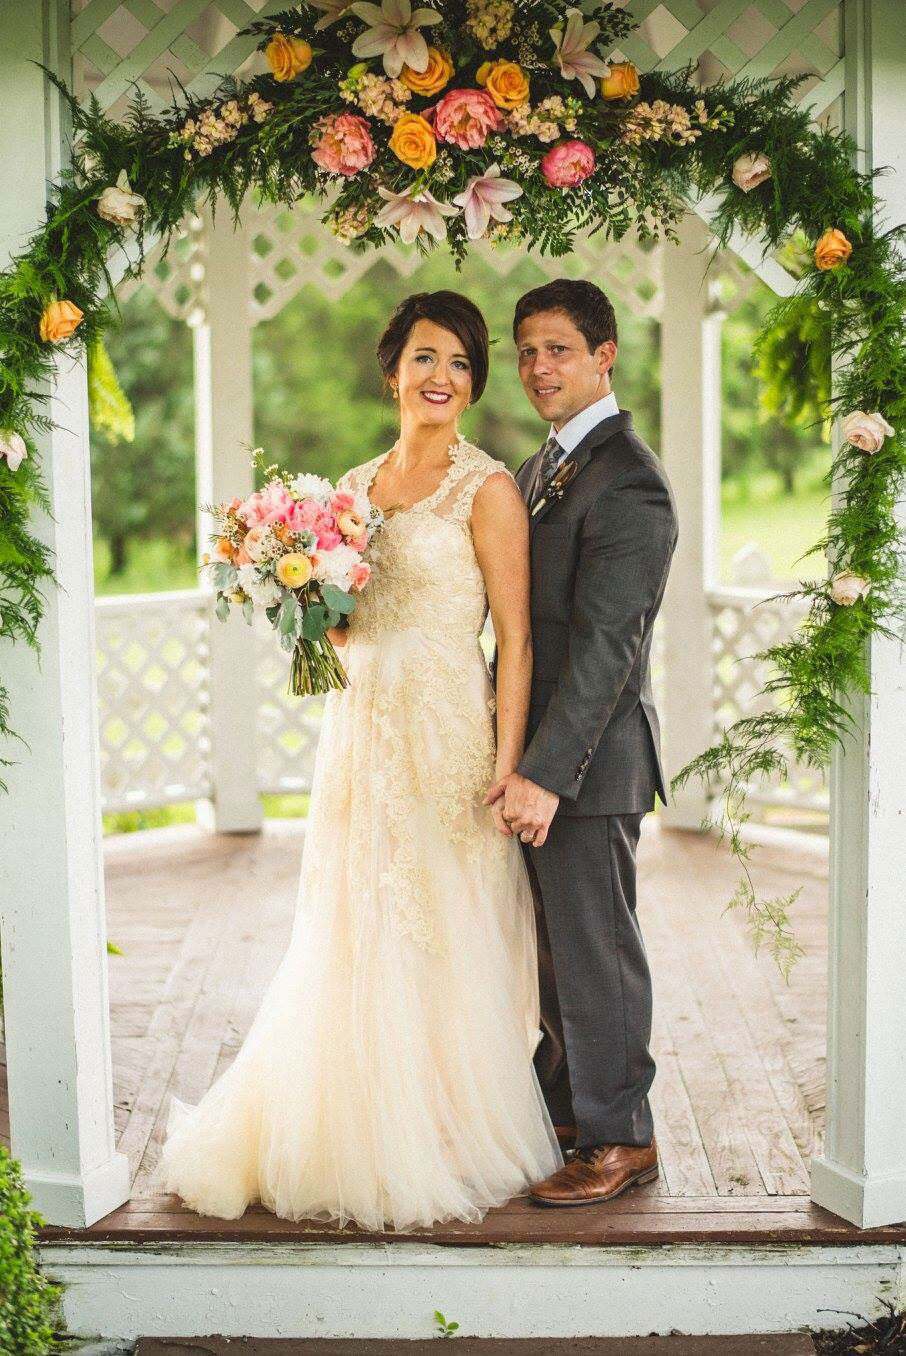 Ashley's Fairy Tale Garden Wedding | Korynne